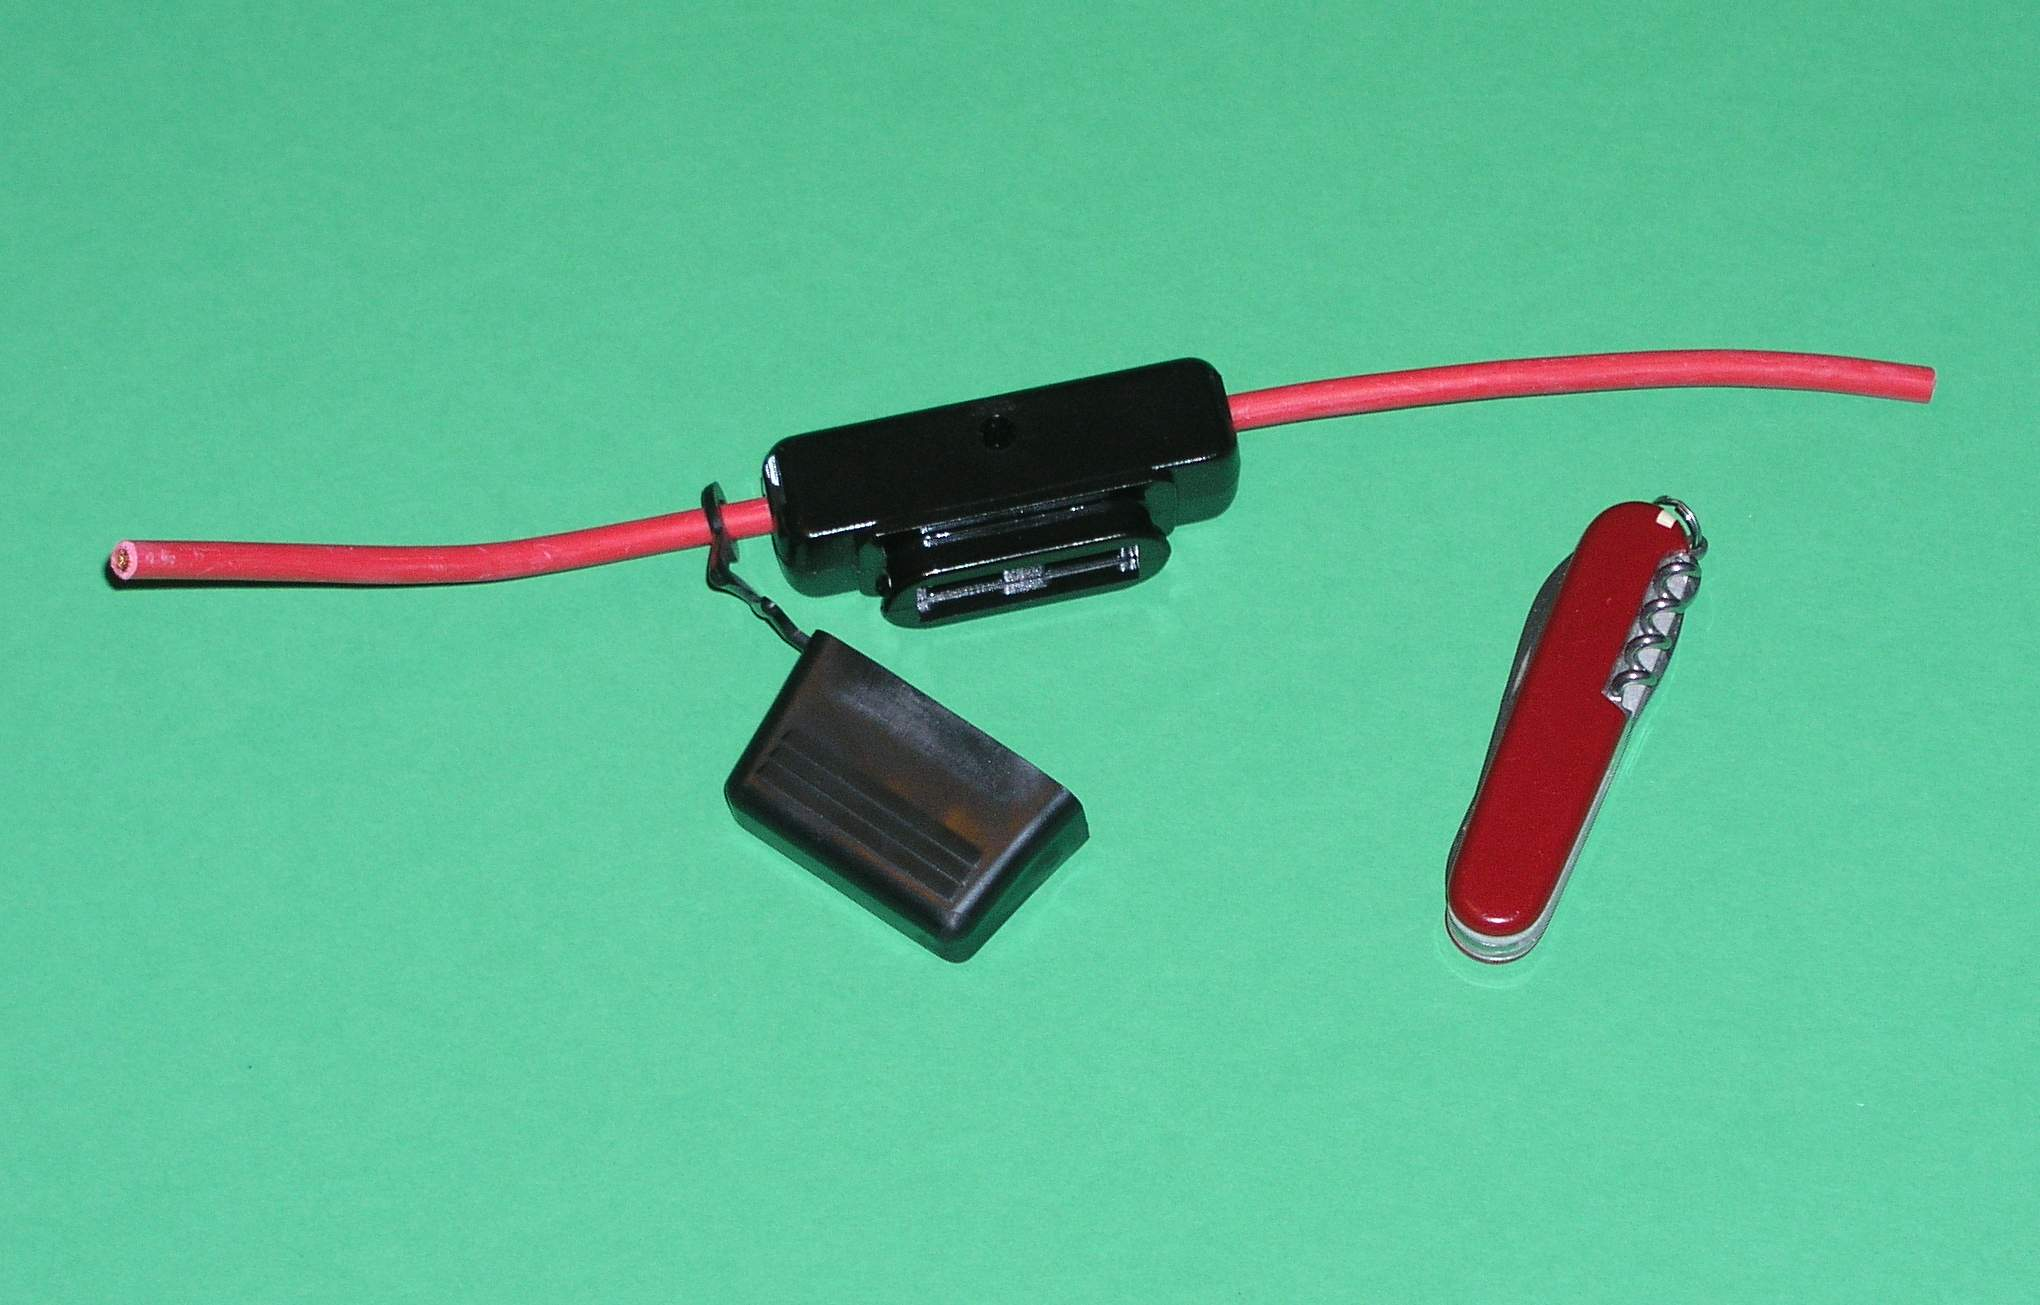 Aeroelectric List Archive Browser Maxi Fuse Box See Http Aeroelectriccom Pictures Fuses Holders Maxifuse Holder